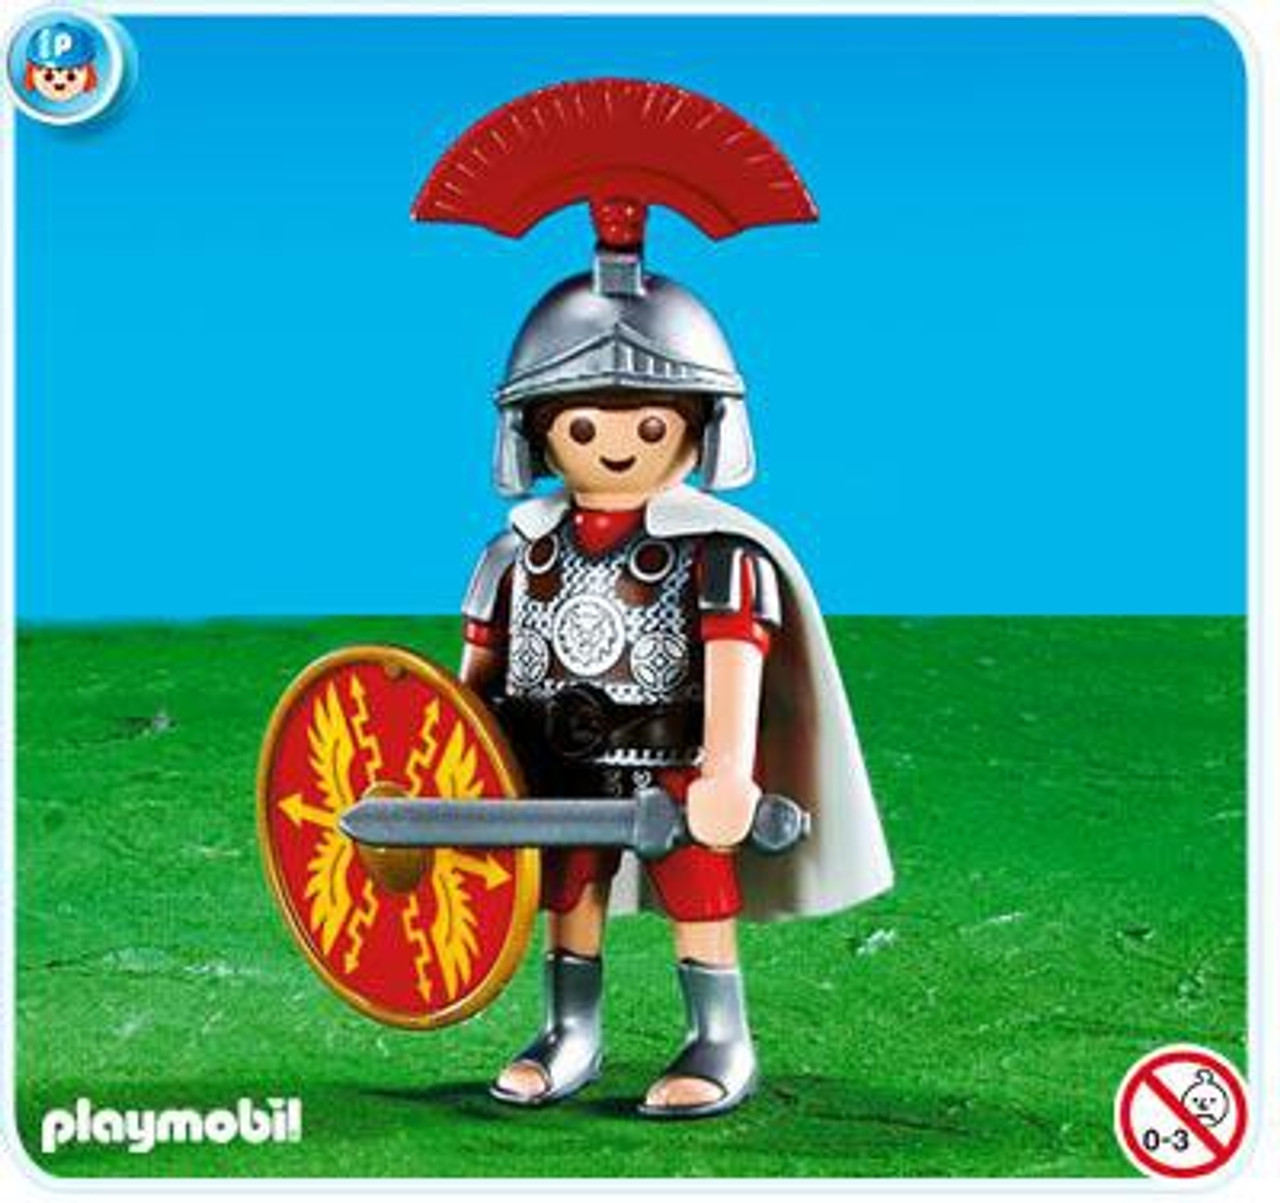 Playmobil Romans & Egyptians Centurion Set #7877